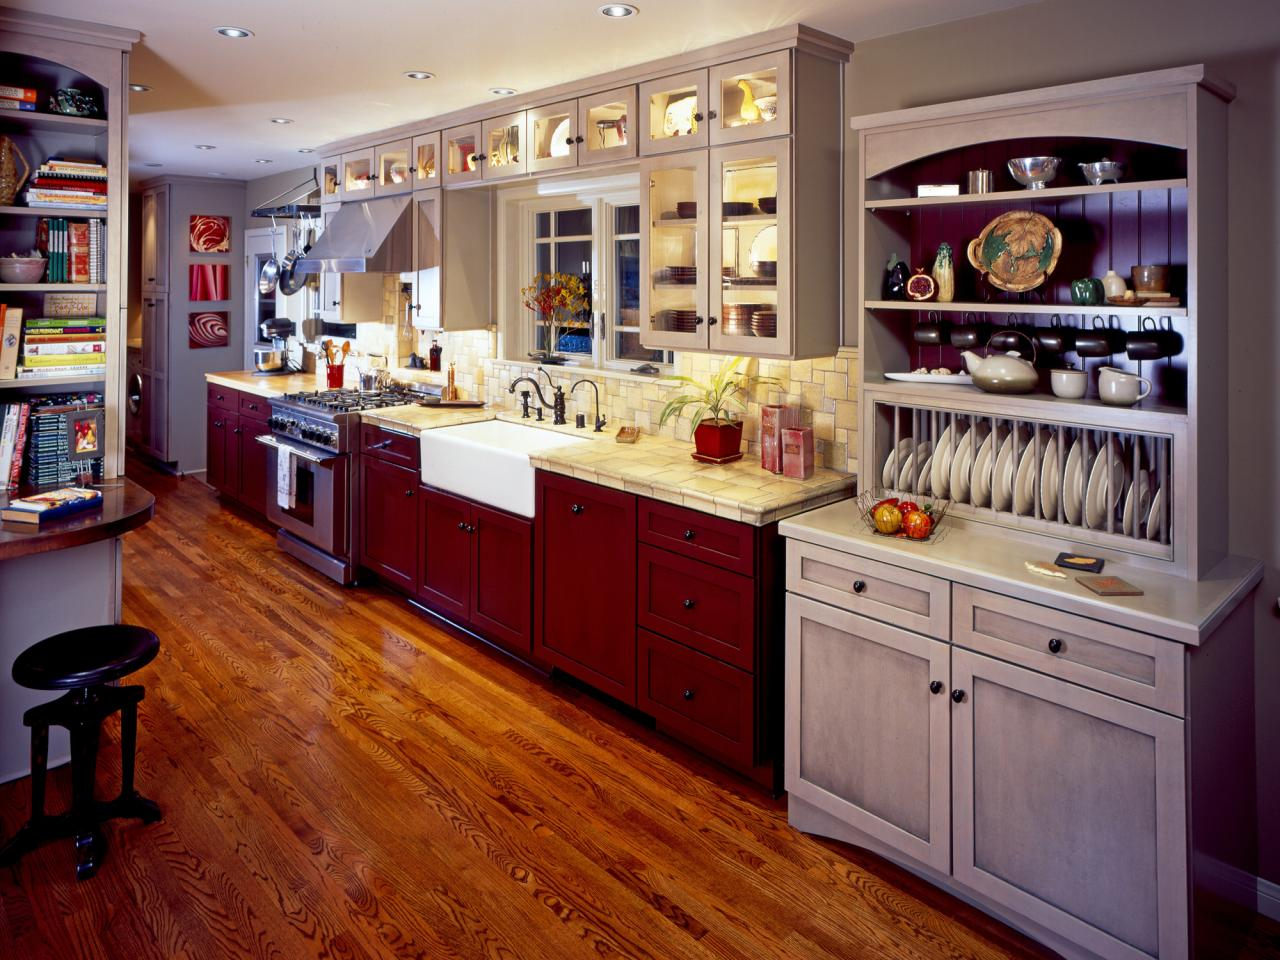 Kitchen Cabinet Layout Extraordinary Kitchen Layout Templates 6 Different Designs  Hgtv Inspiration Design